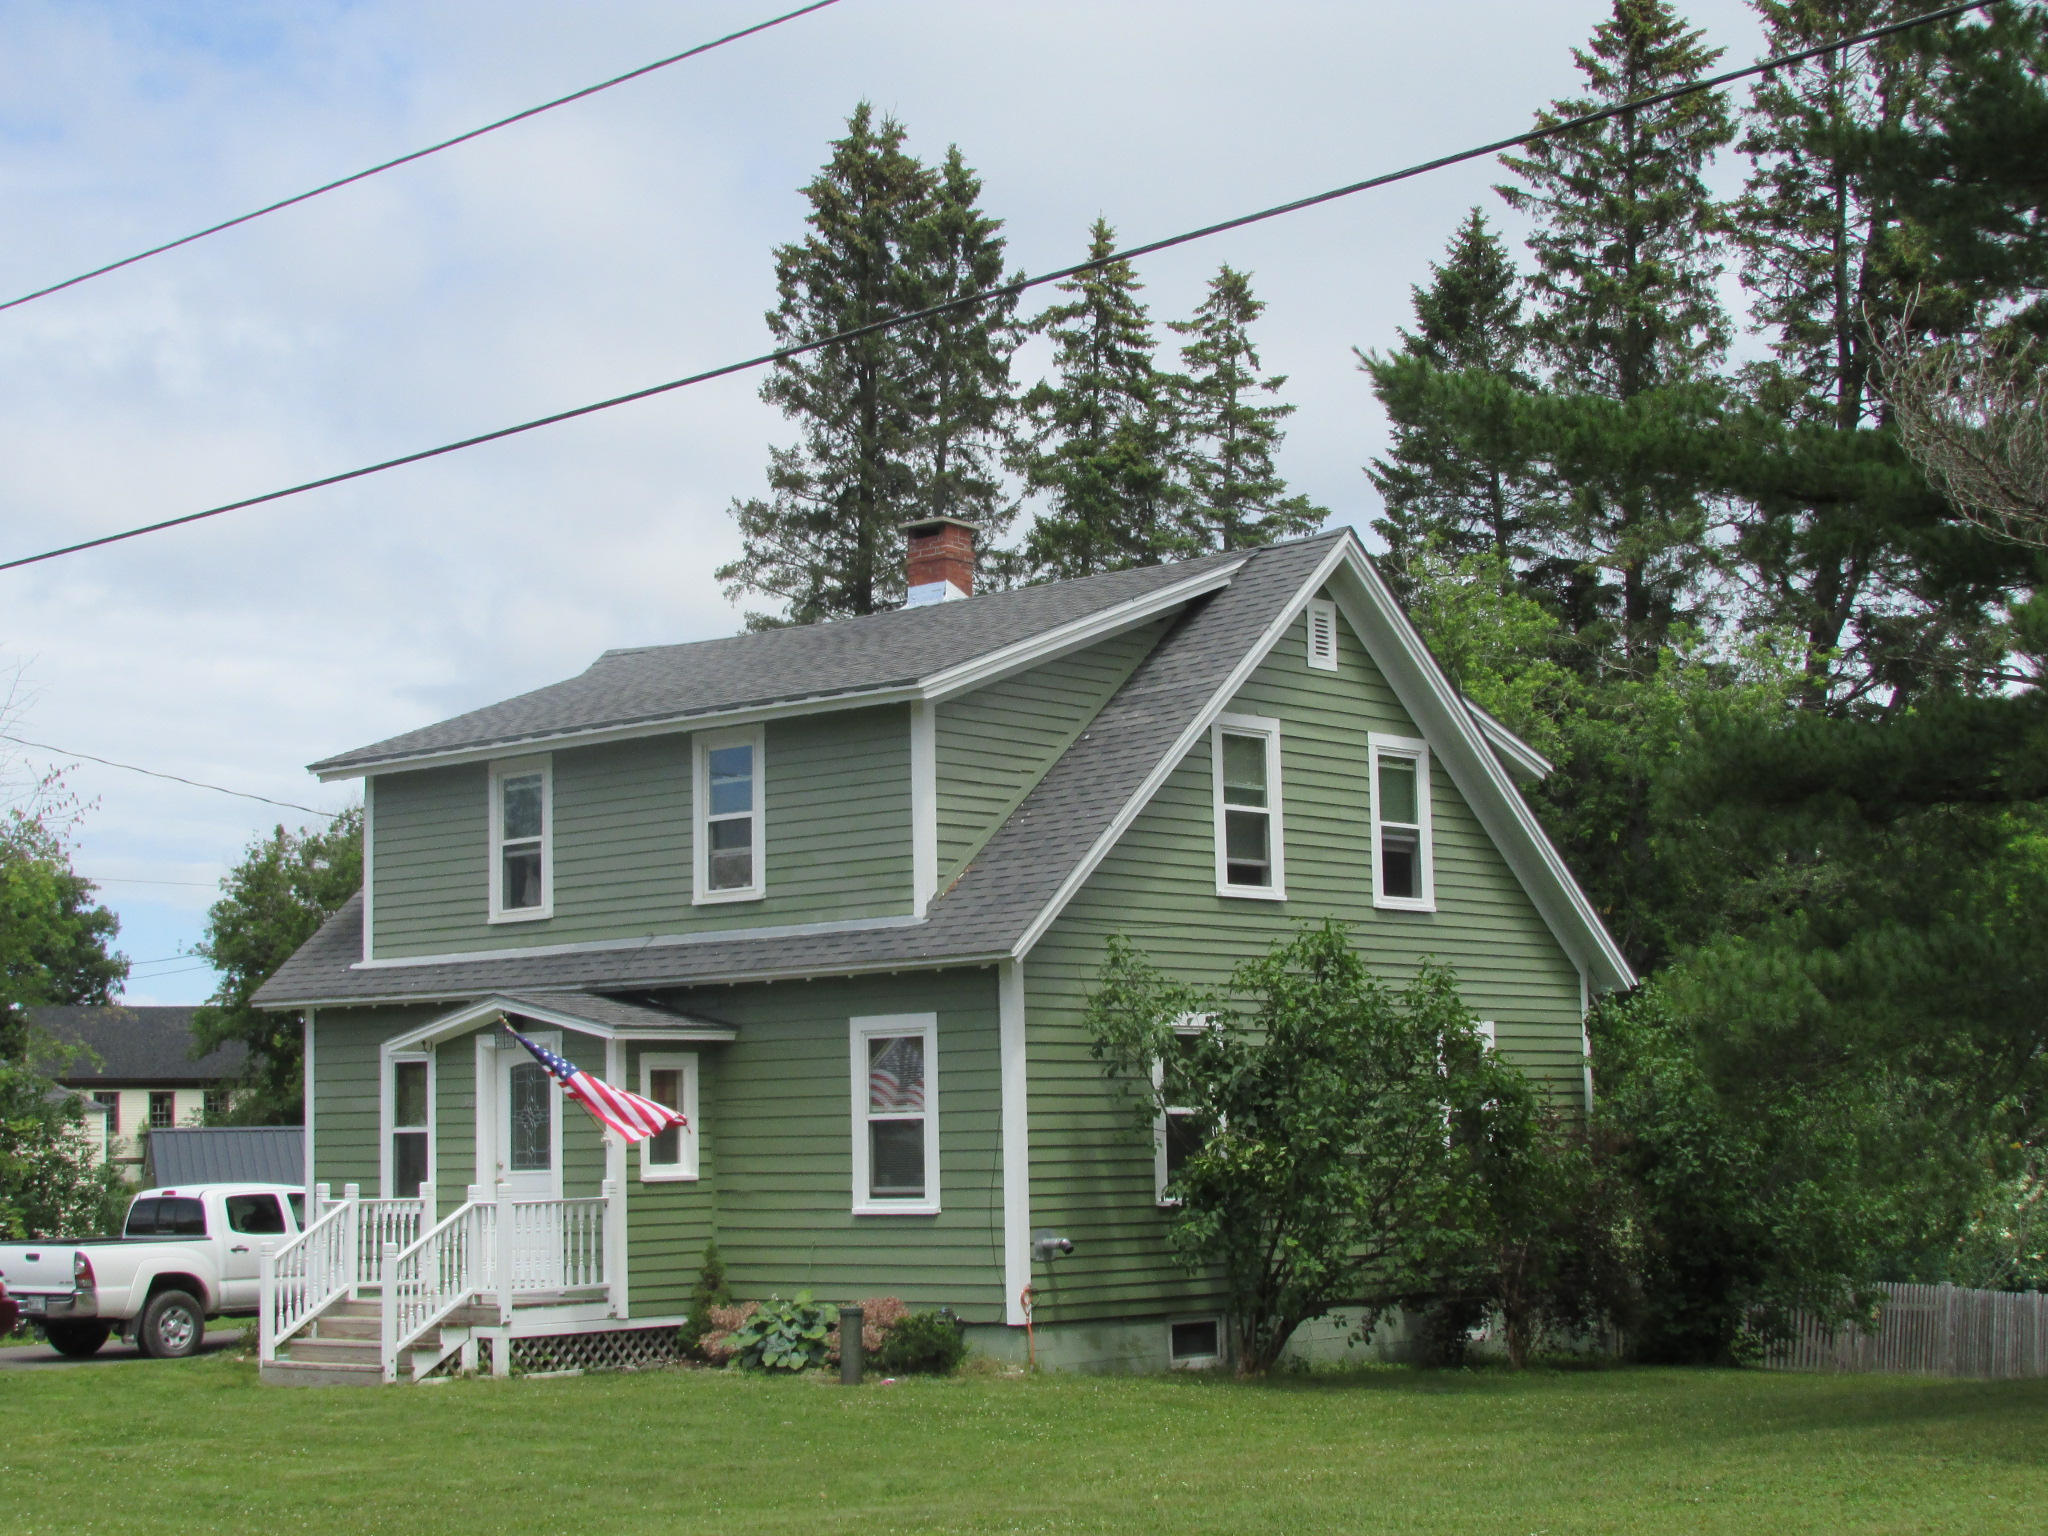 Real Estate Listing At 34 Chandler StreetHoulton, Maine